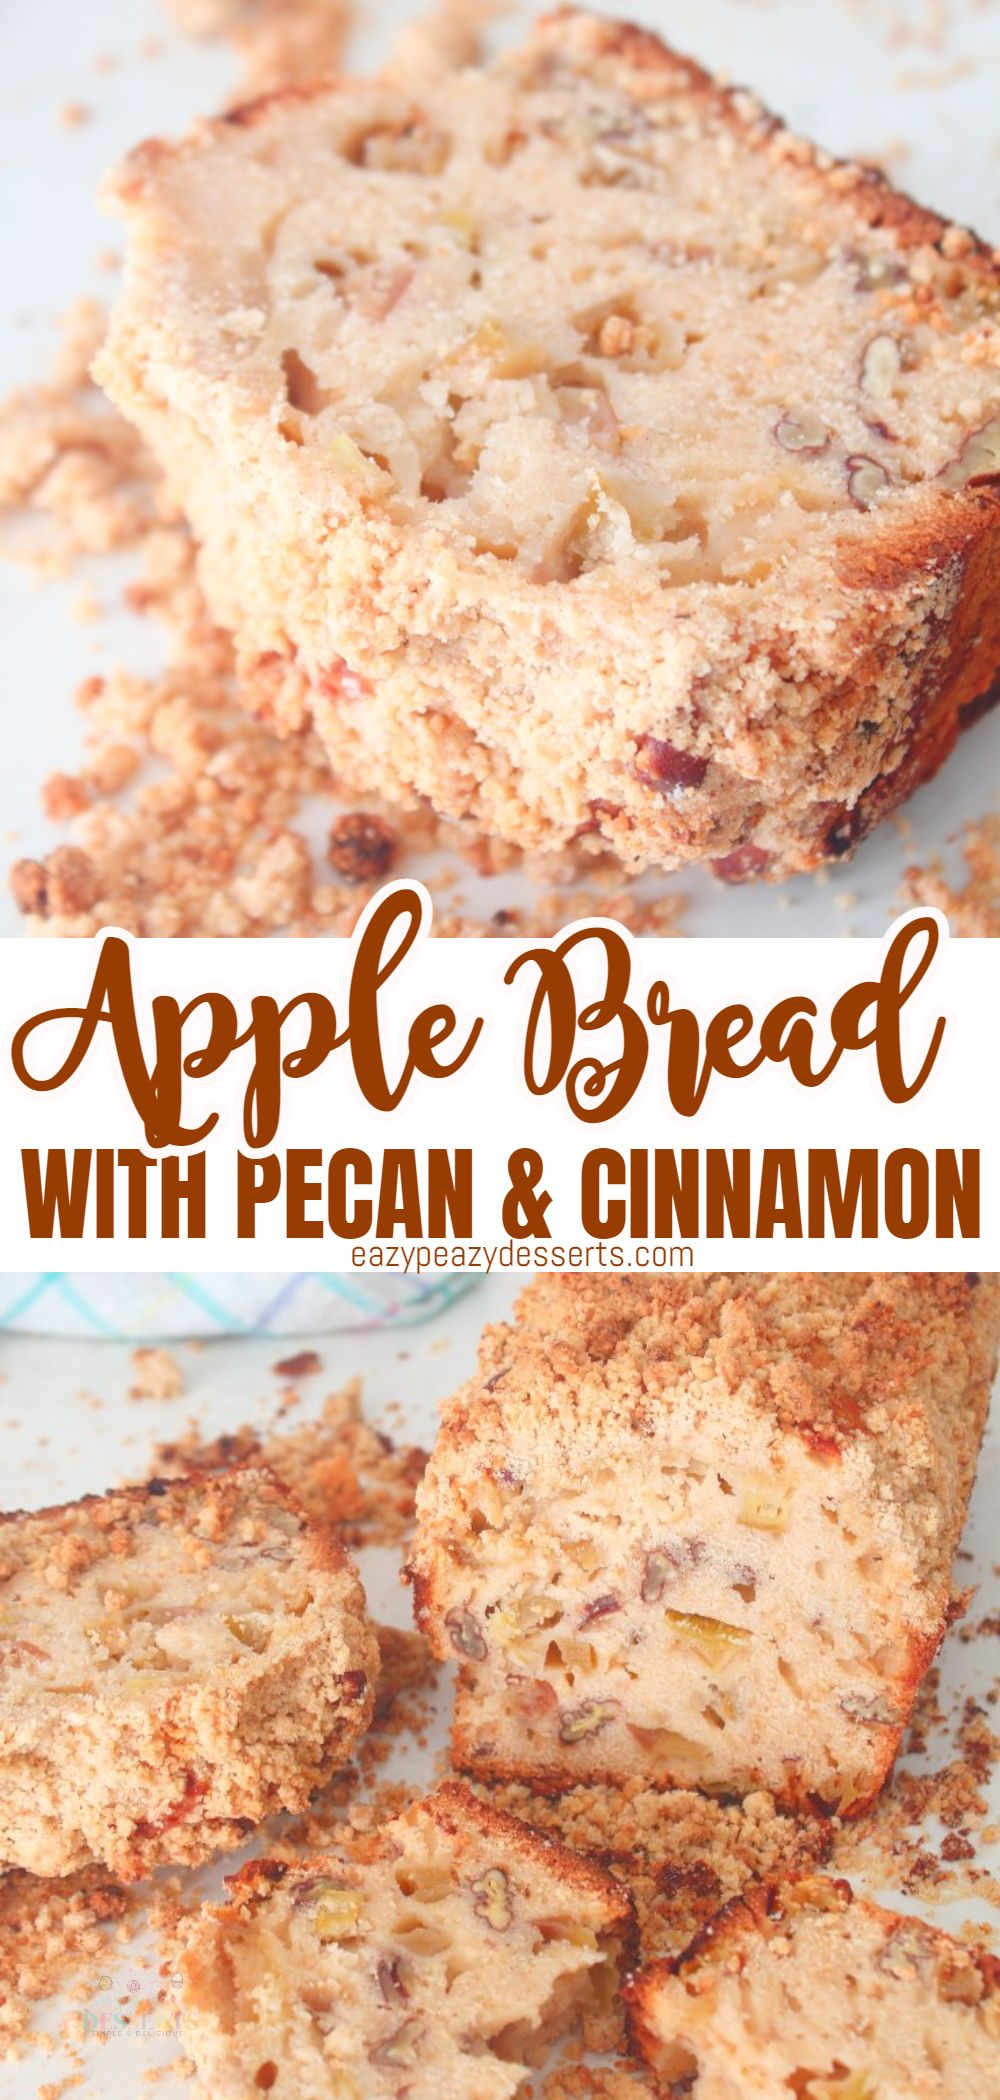 The apple cinnamon bread with pecans and crumbs is great to bake on a weekend morning and enjoy with a delicious cup of coffee or hot chocolate! Your house will be filled with the amazing apple and cinnamon smell everyone loves! Today I'm going to show you the super easy way of making apple bread! via @eazypeazydesserts